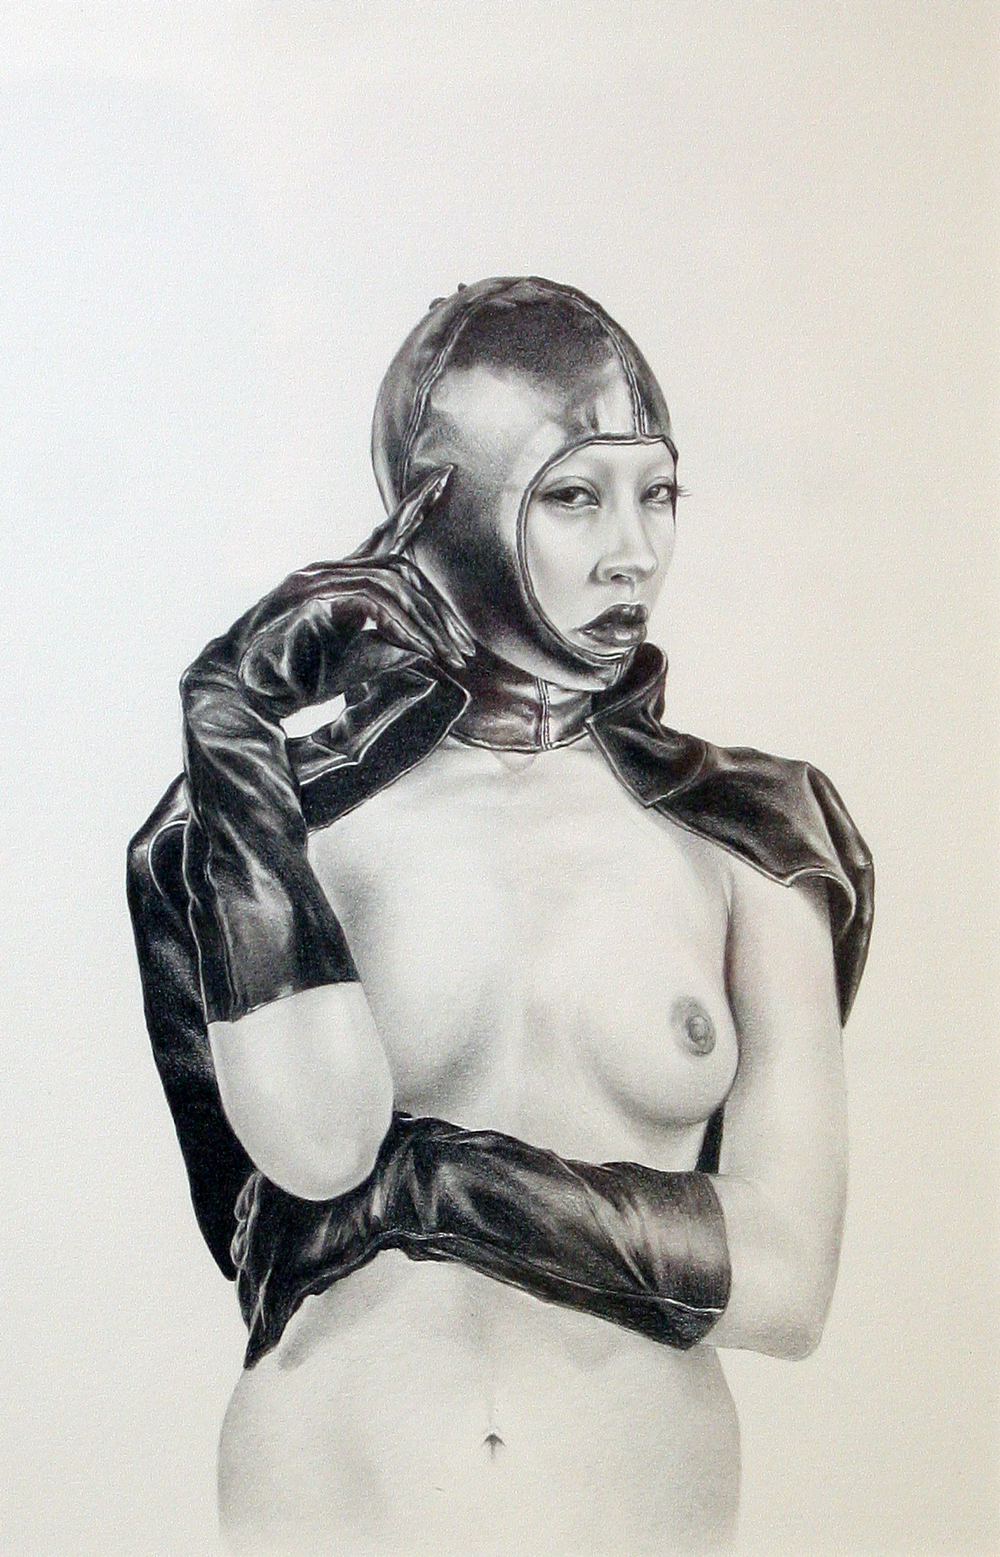 "Karen Hsiao, 'Libertine', Graphite on Vellum, 7.5"" x 11.5"""